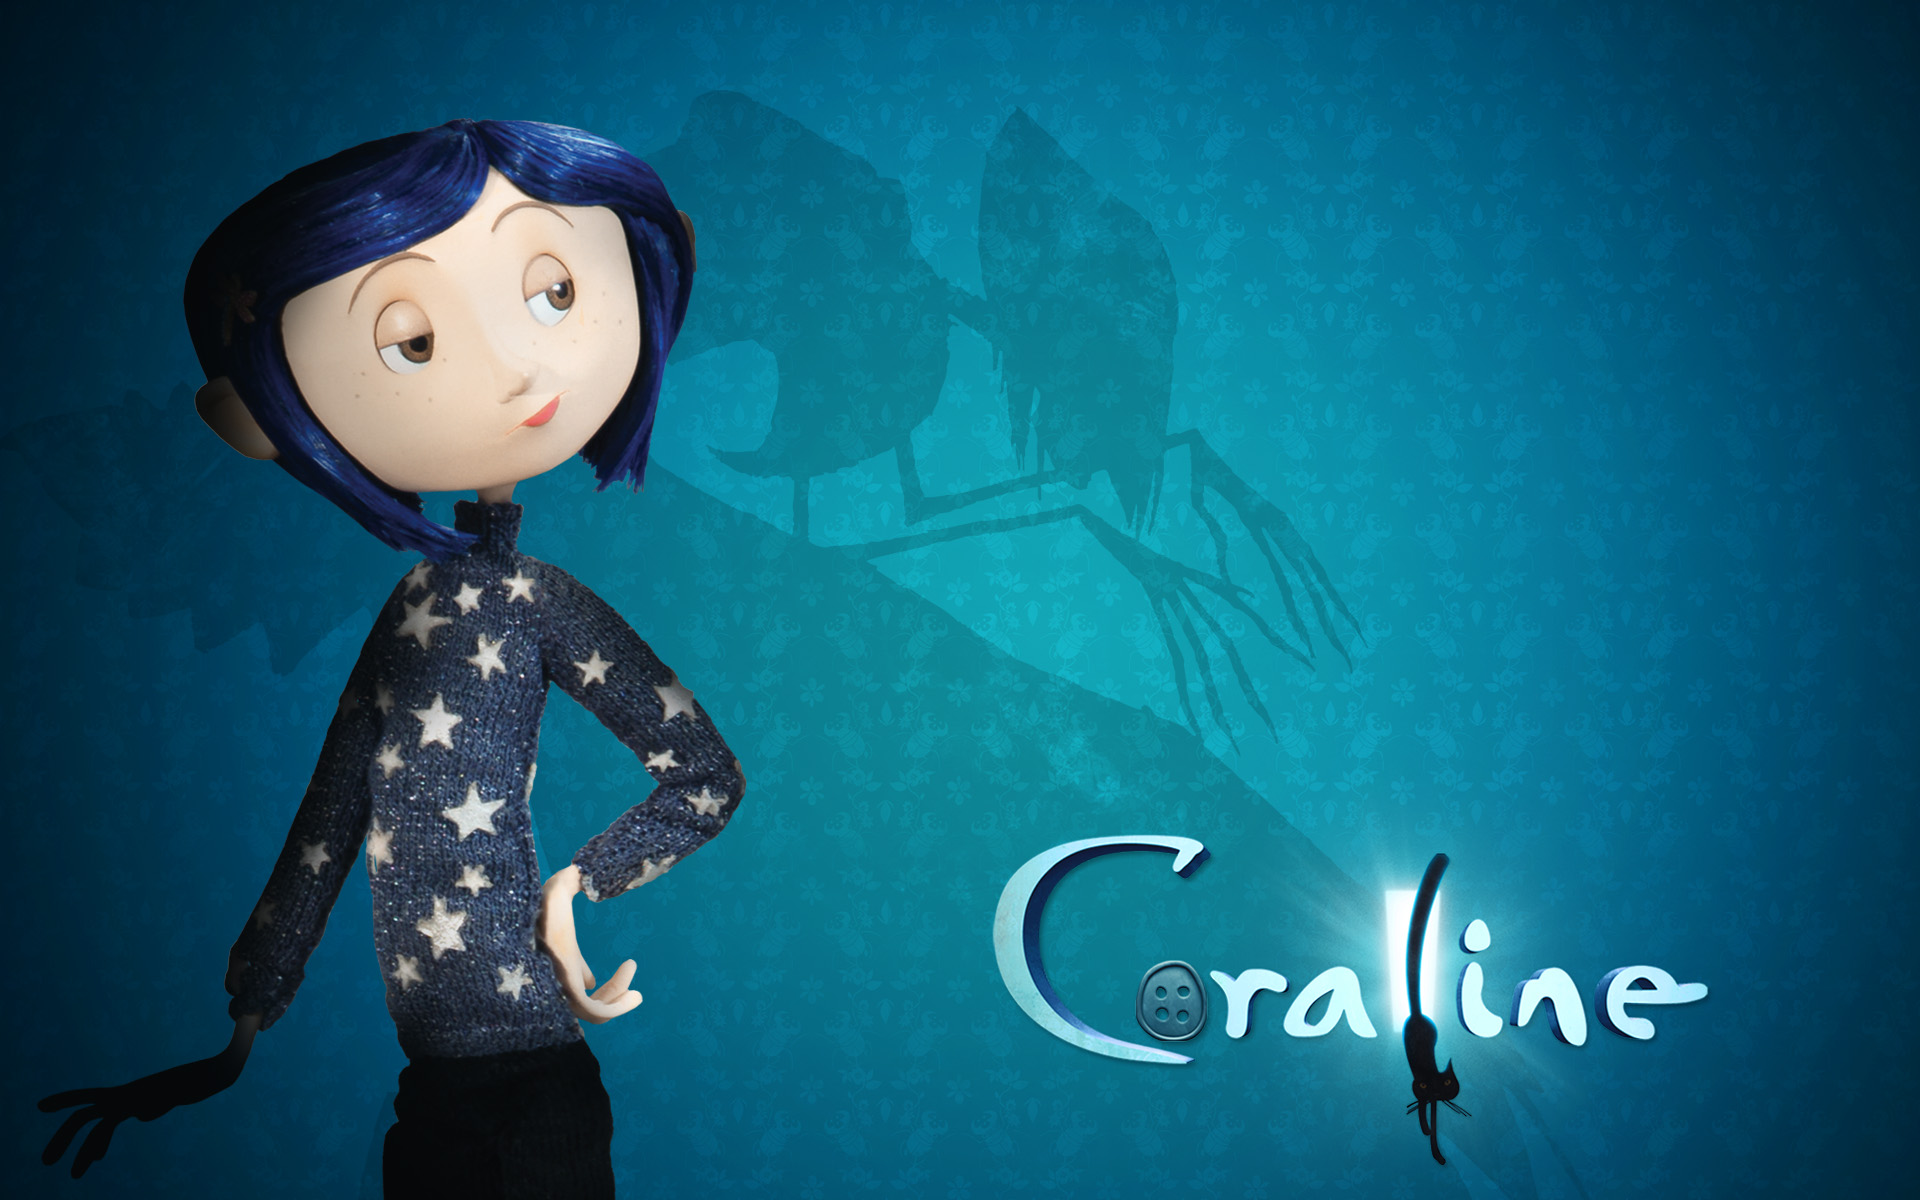 Dakota Fanning in Coraline 1008.53 Kb